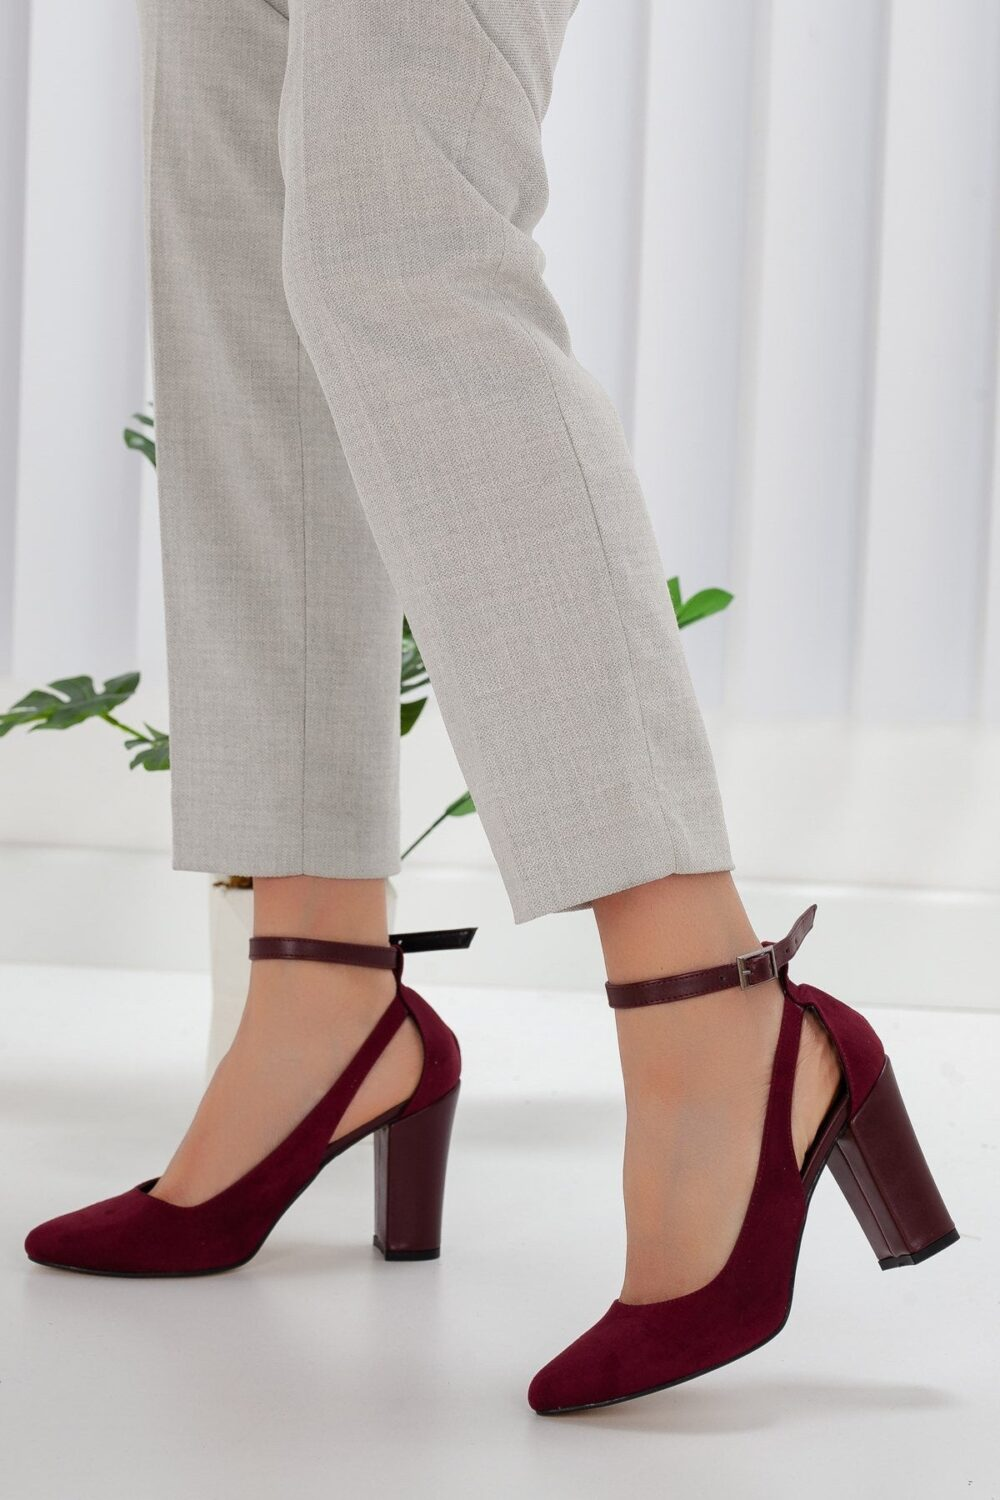 Burgundy Heels Shoes, Bridal Ankle Heels, Burgundy Stripe Shoes, Modern Women Suede Leather Heeled Party Wear Gift For Wife